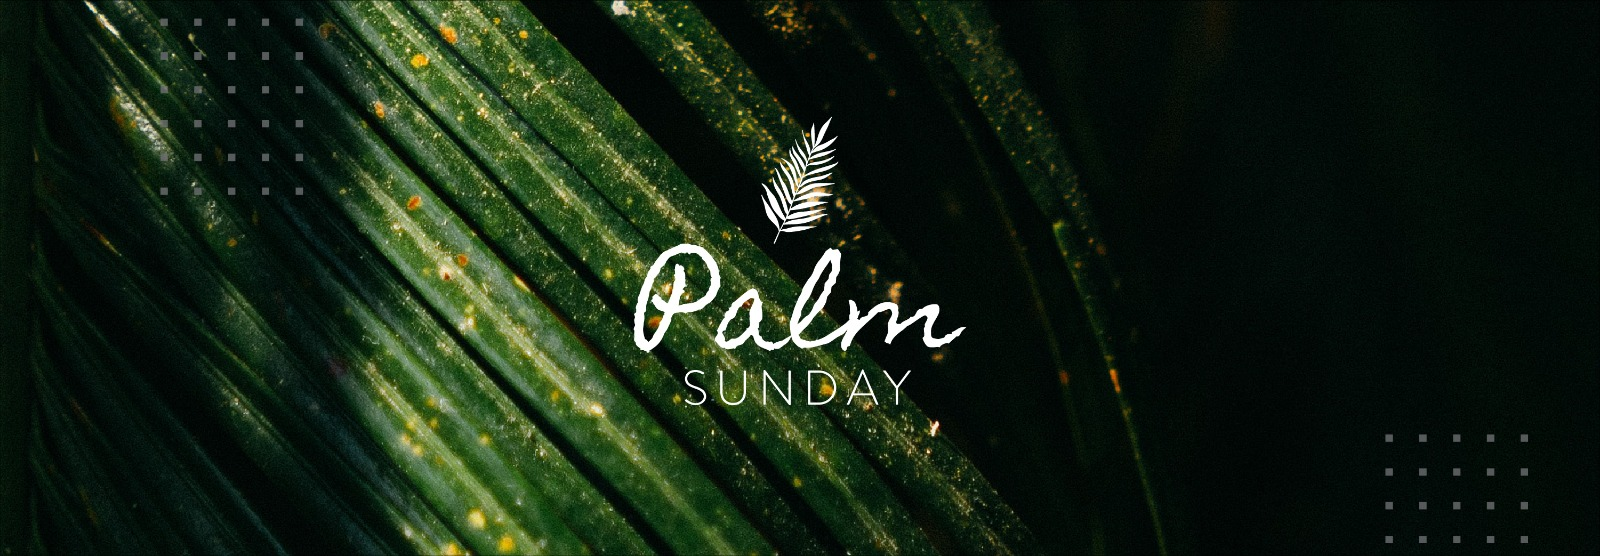 https://nazarene.org/sites/default/files/revslider/image/Palm%20Sunday%20slider.jpeg